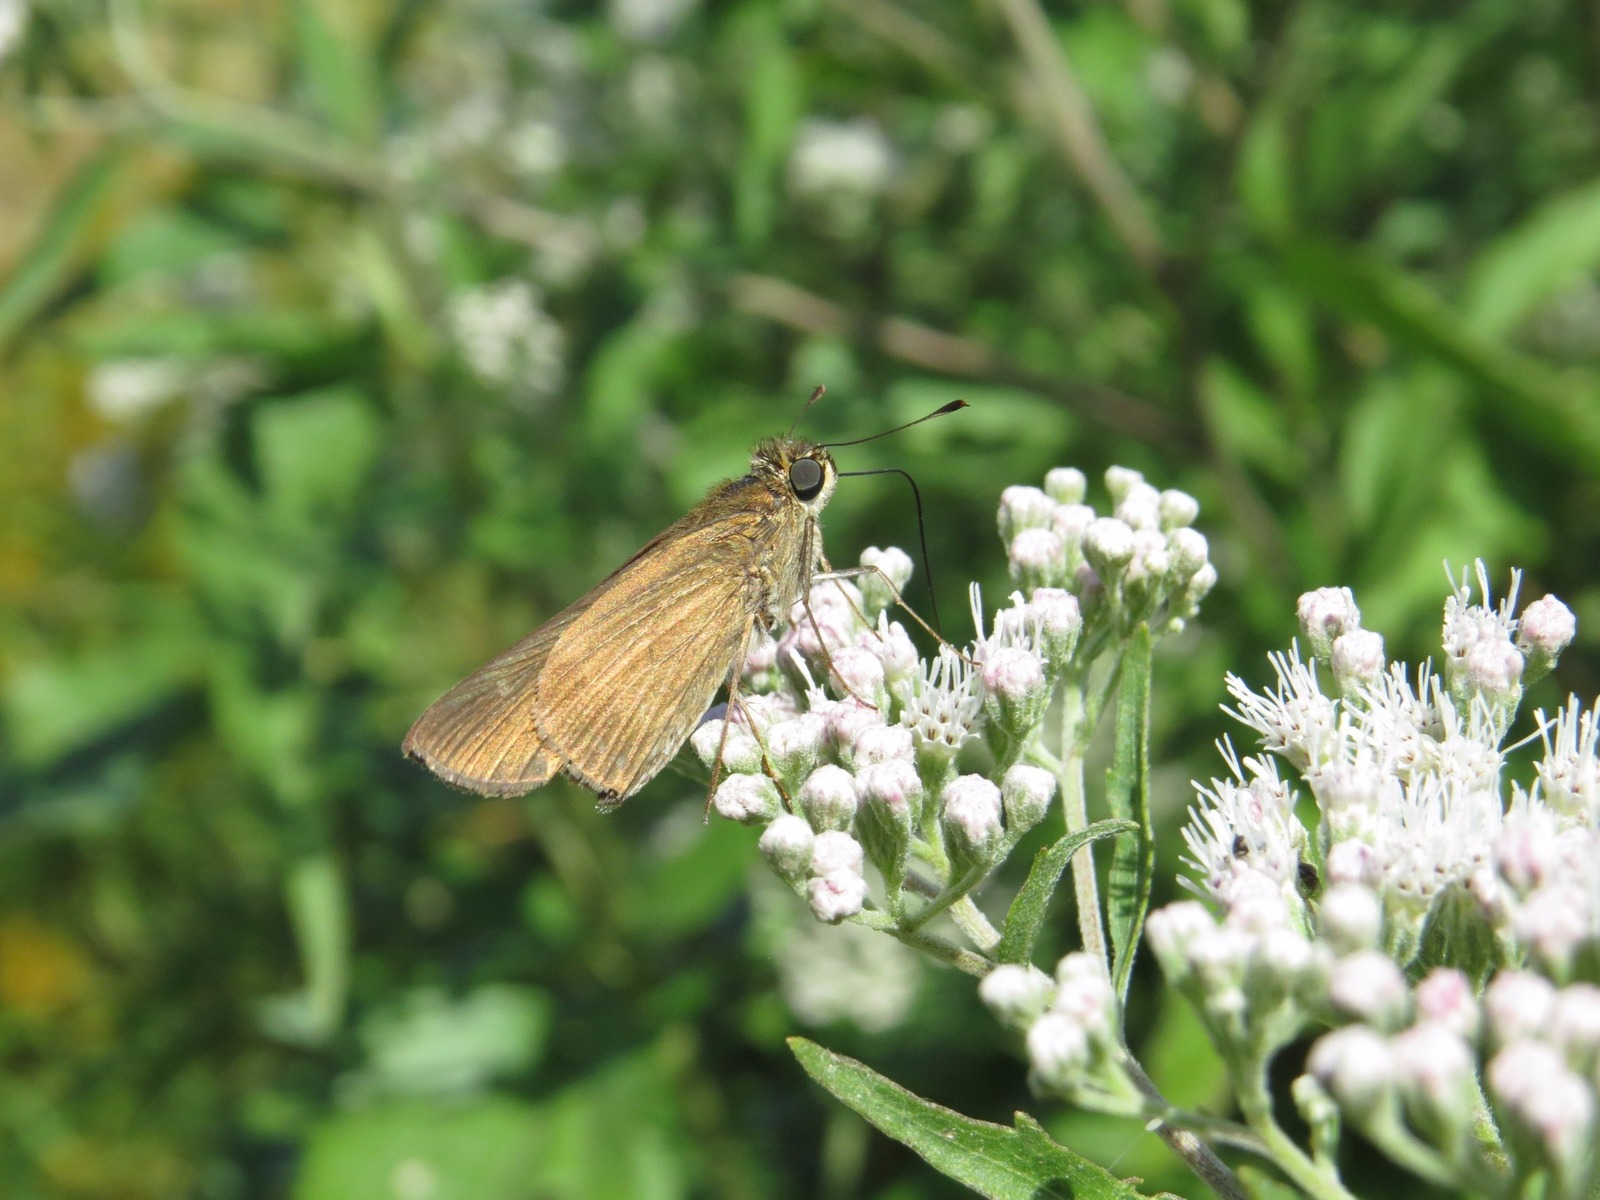 With this report and photo by Tom Bailey in Palmyra, BUR, Ocola skipper, our 89th specie, has now been recorded in 5 of our 8 counties:  GLO, CUM, CAM. CMY, and BUR.